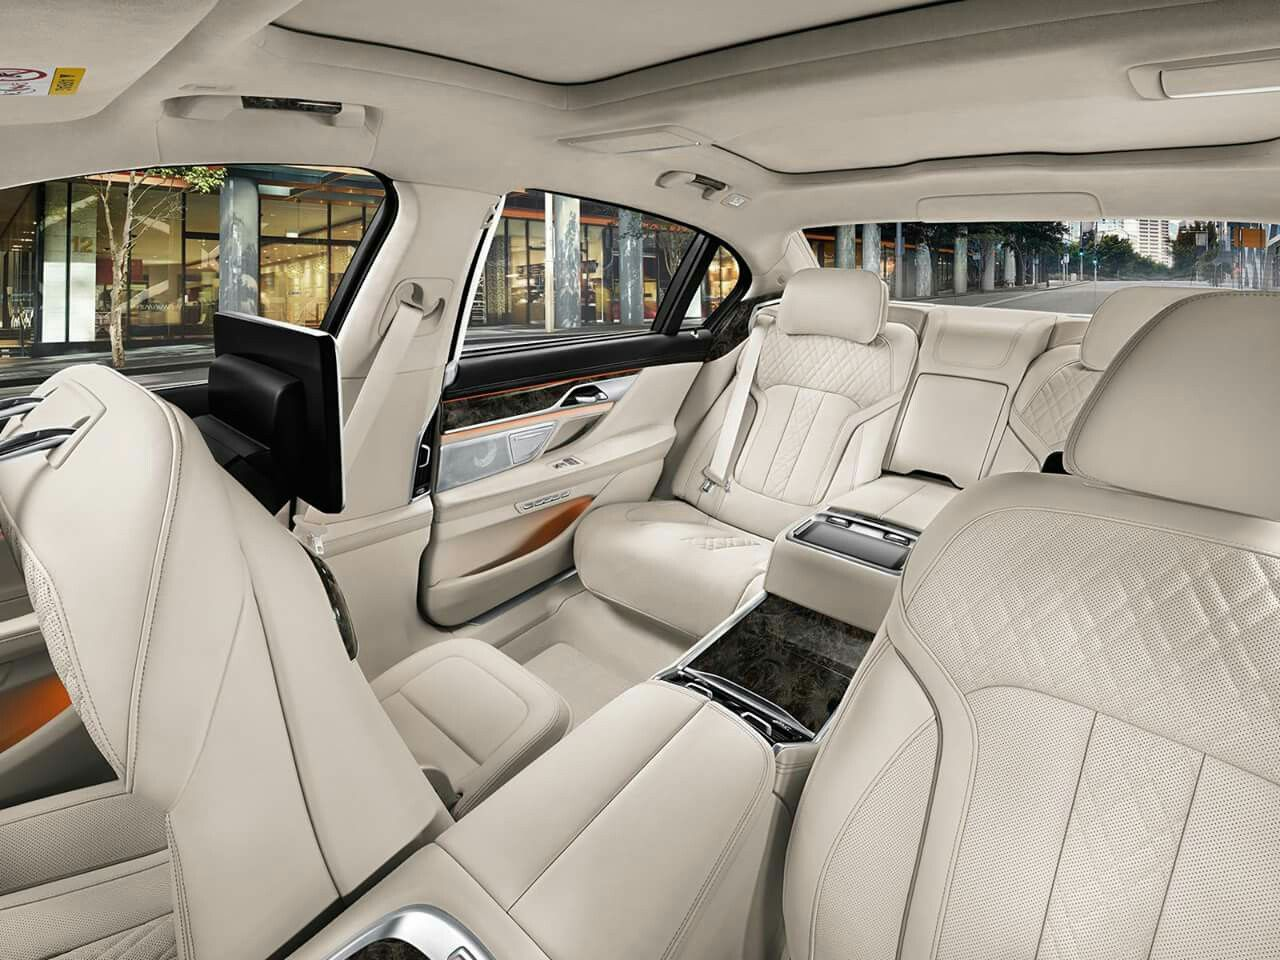 Bmw 7 Series Interior Designed For Ultimate Luxury Comfort